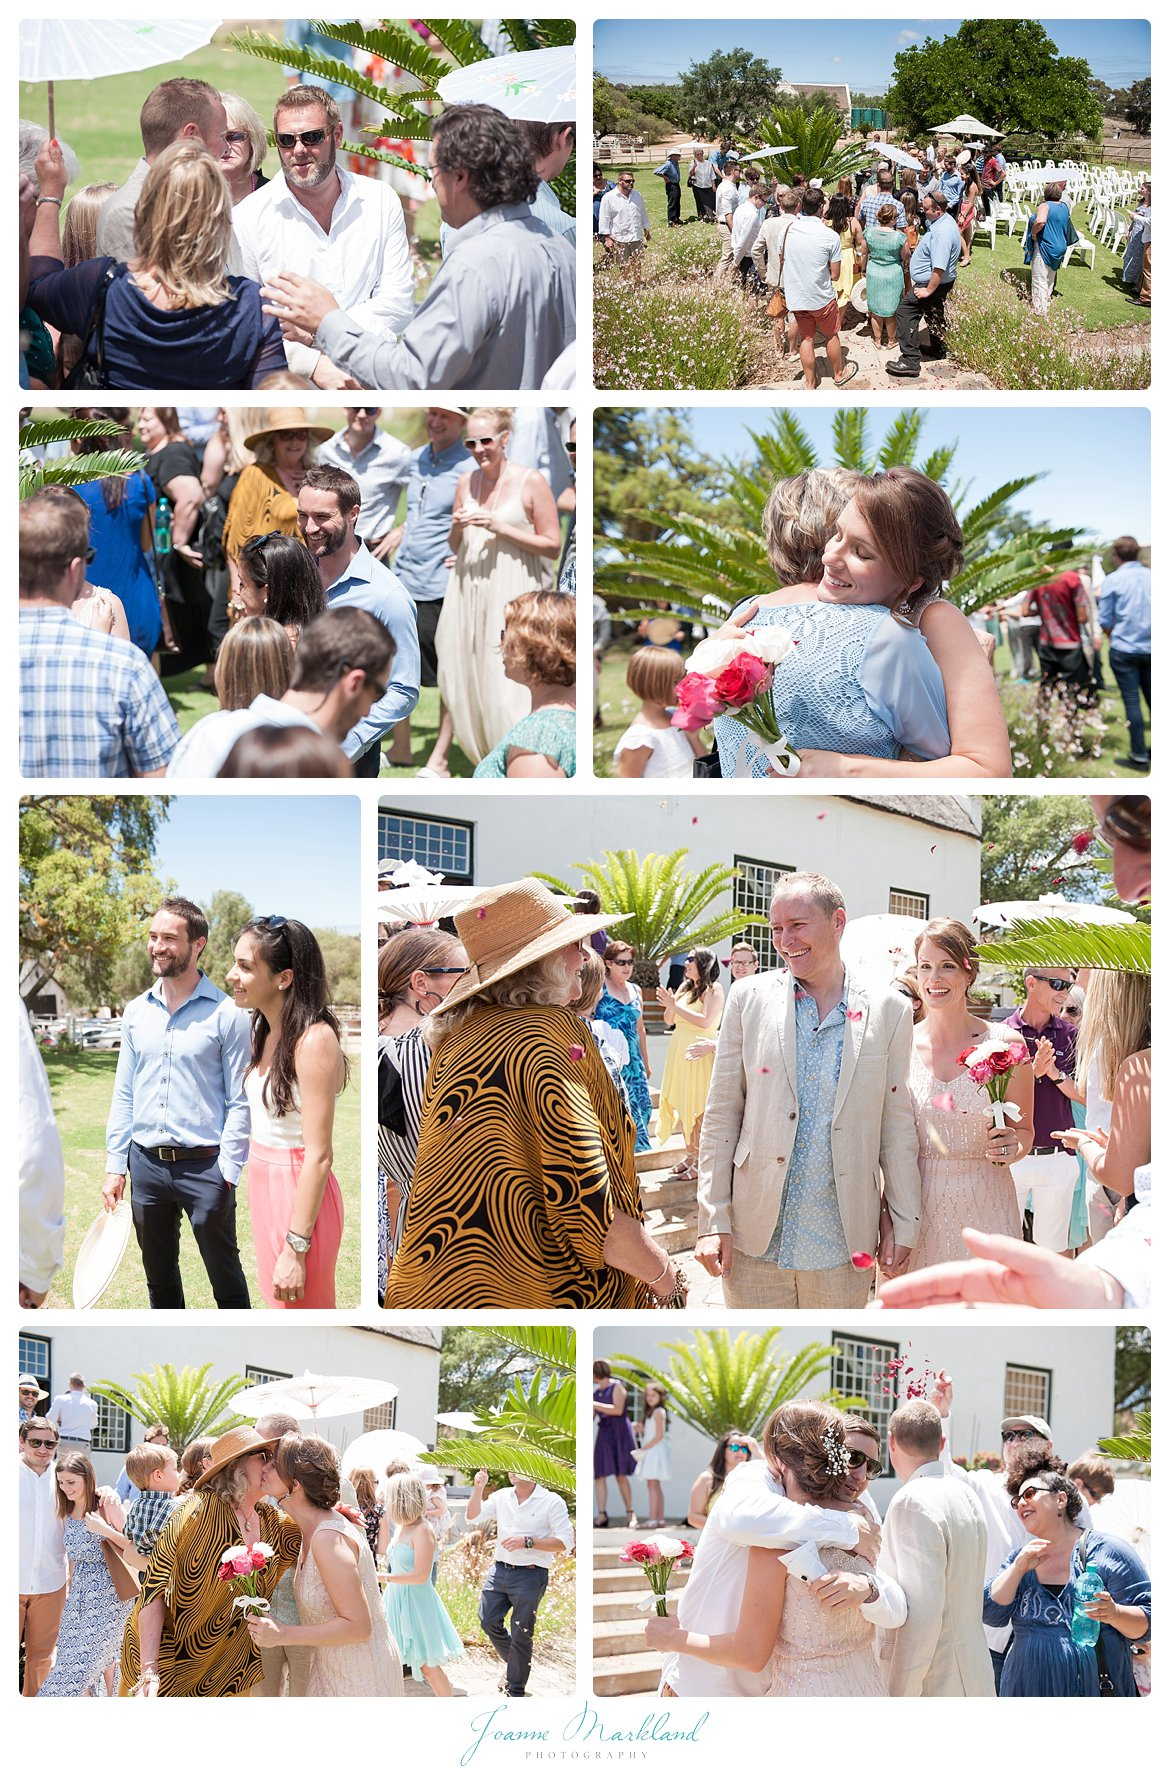 Grootepost-wedding-photography-joanne-markland-017